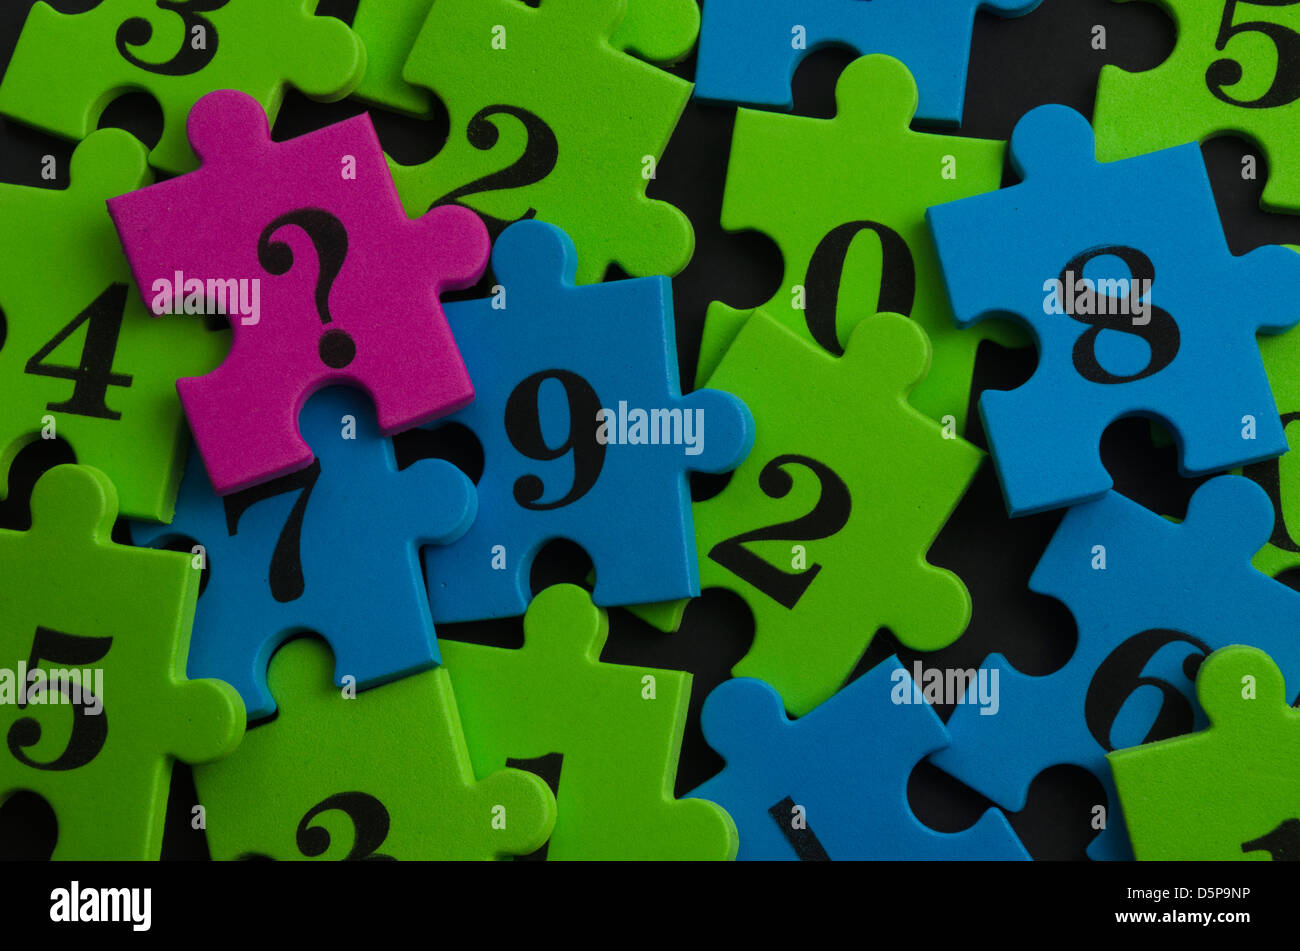 Math colorful puzzle pieces of numbers and a question mark - Stock Image